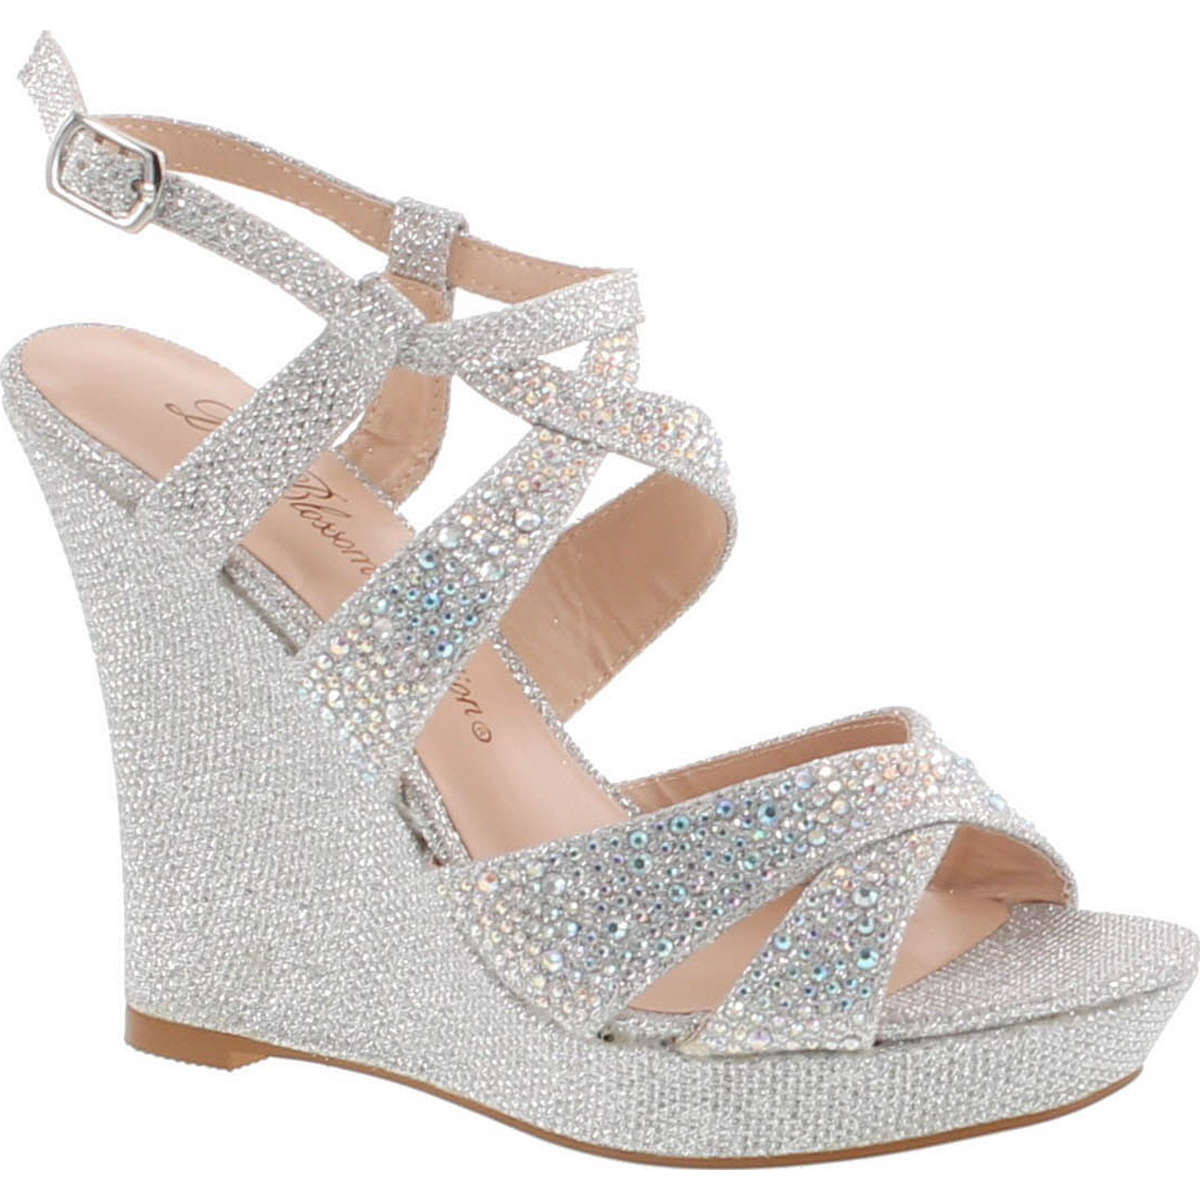 Womens High Heel Wedge Sandal with Crystal Embellishment Style BALLE8 Under Discount Size 36